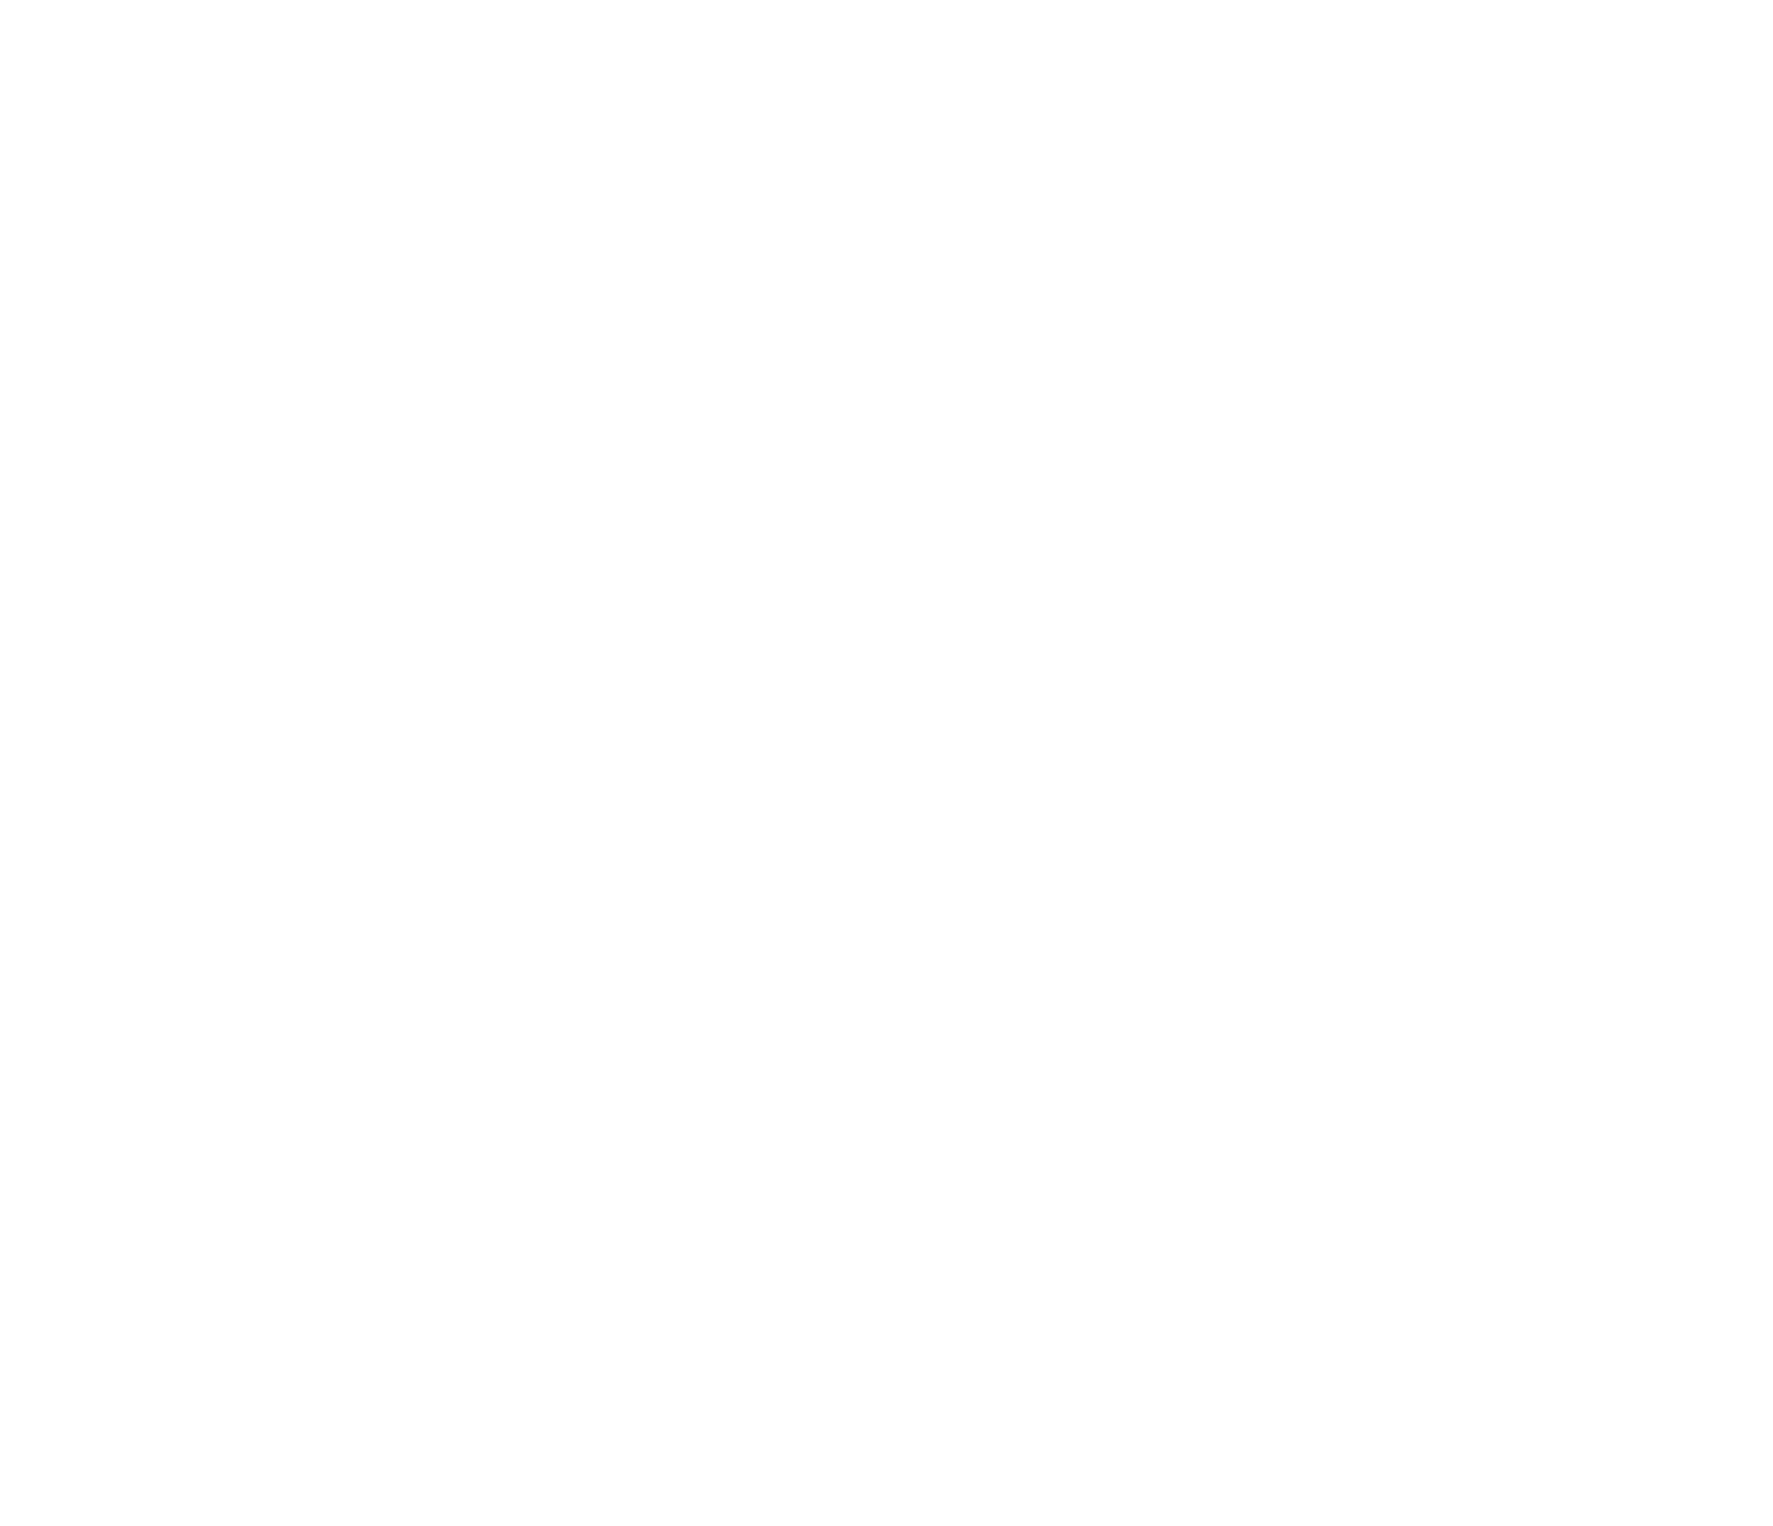 Compass and Wild